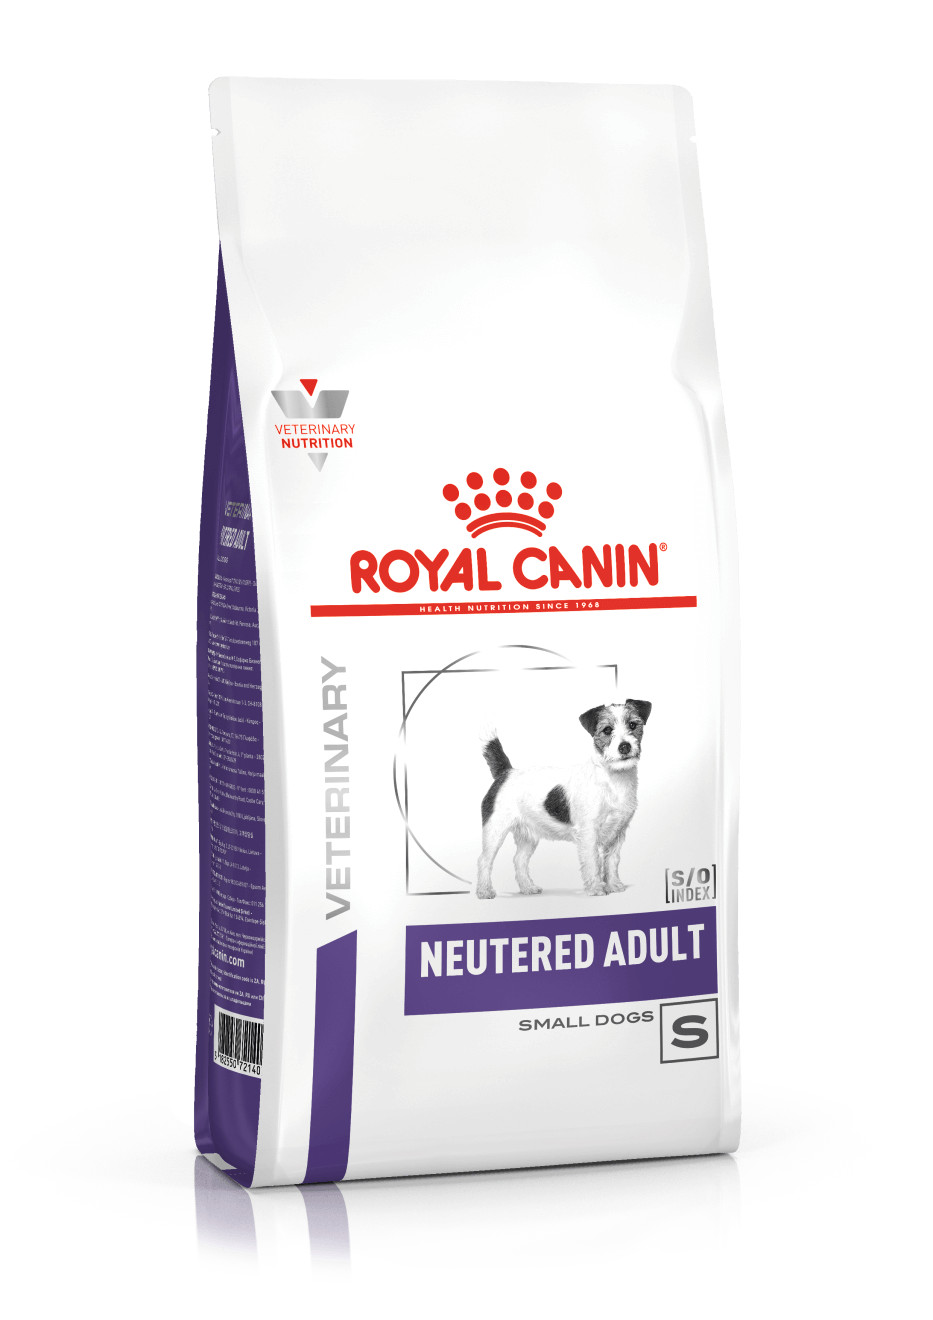 Royal Canin Veterinary Neutered Adult Small Dogs pour chien